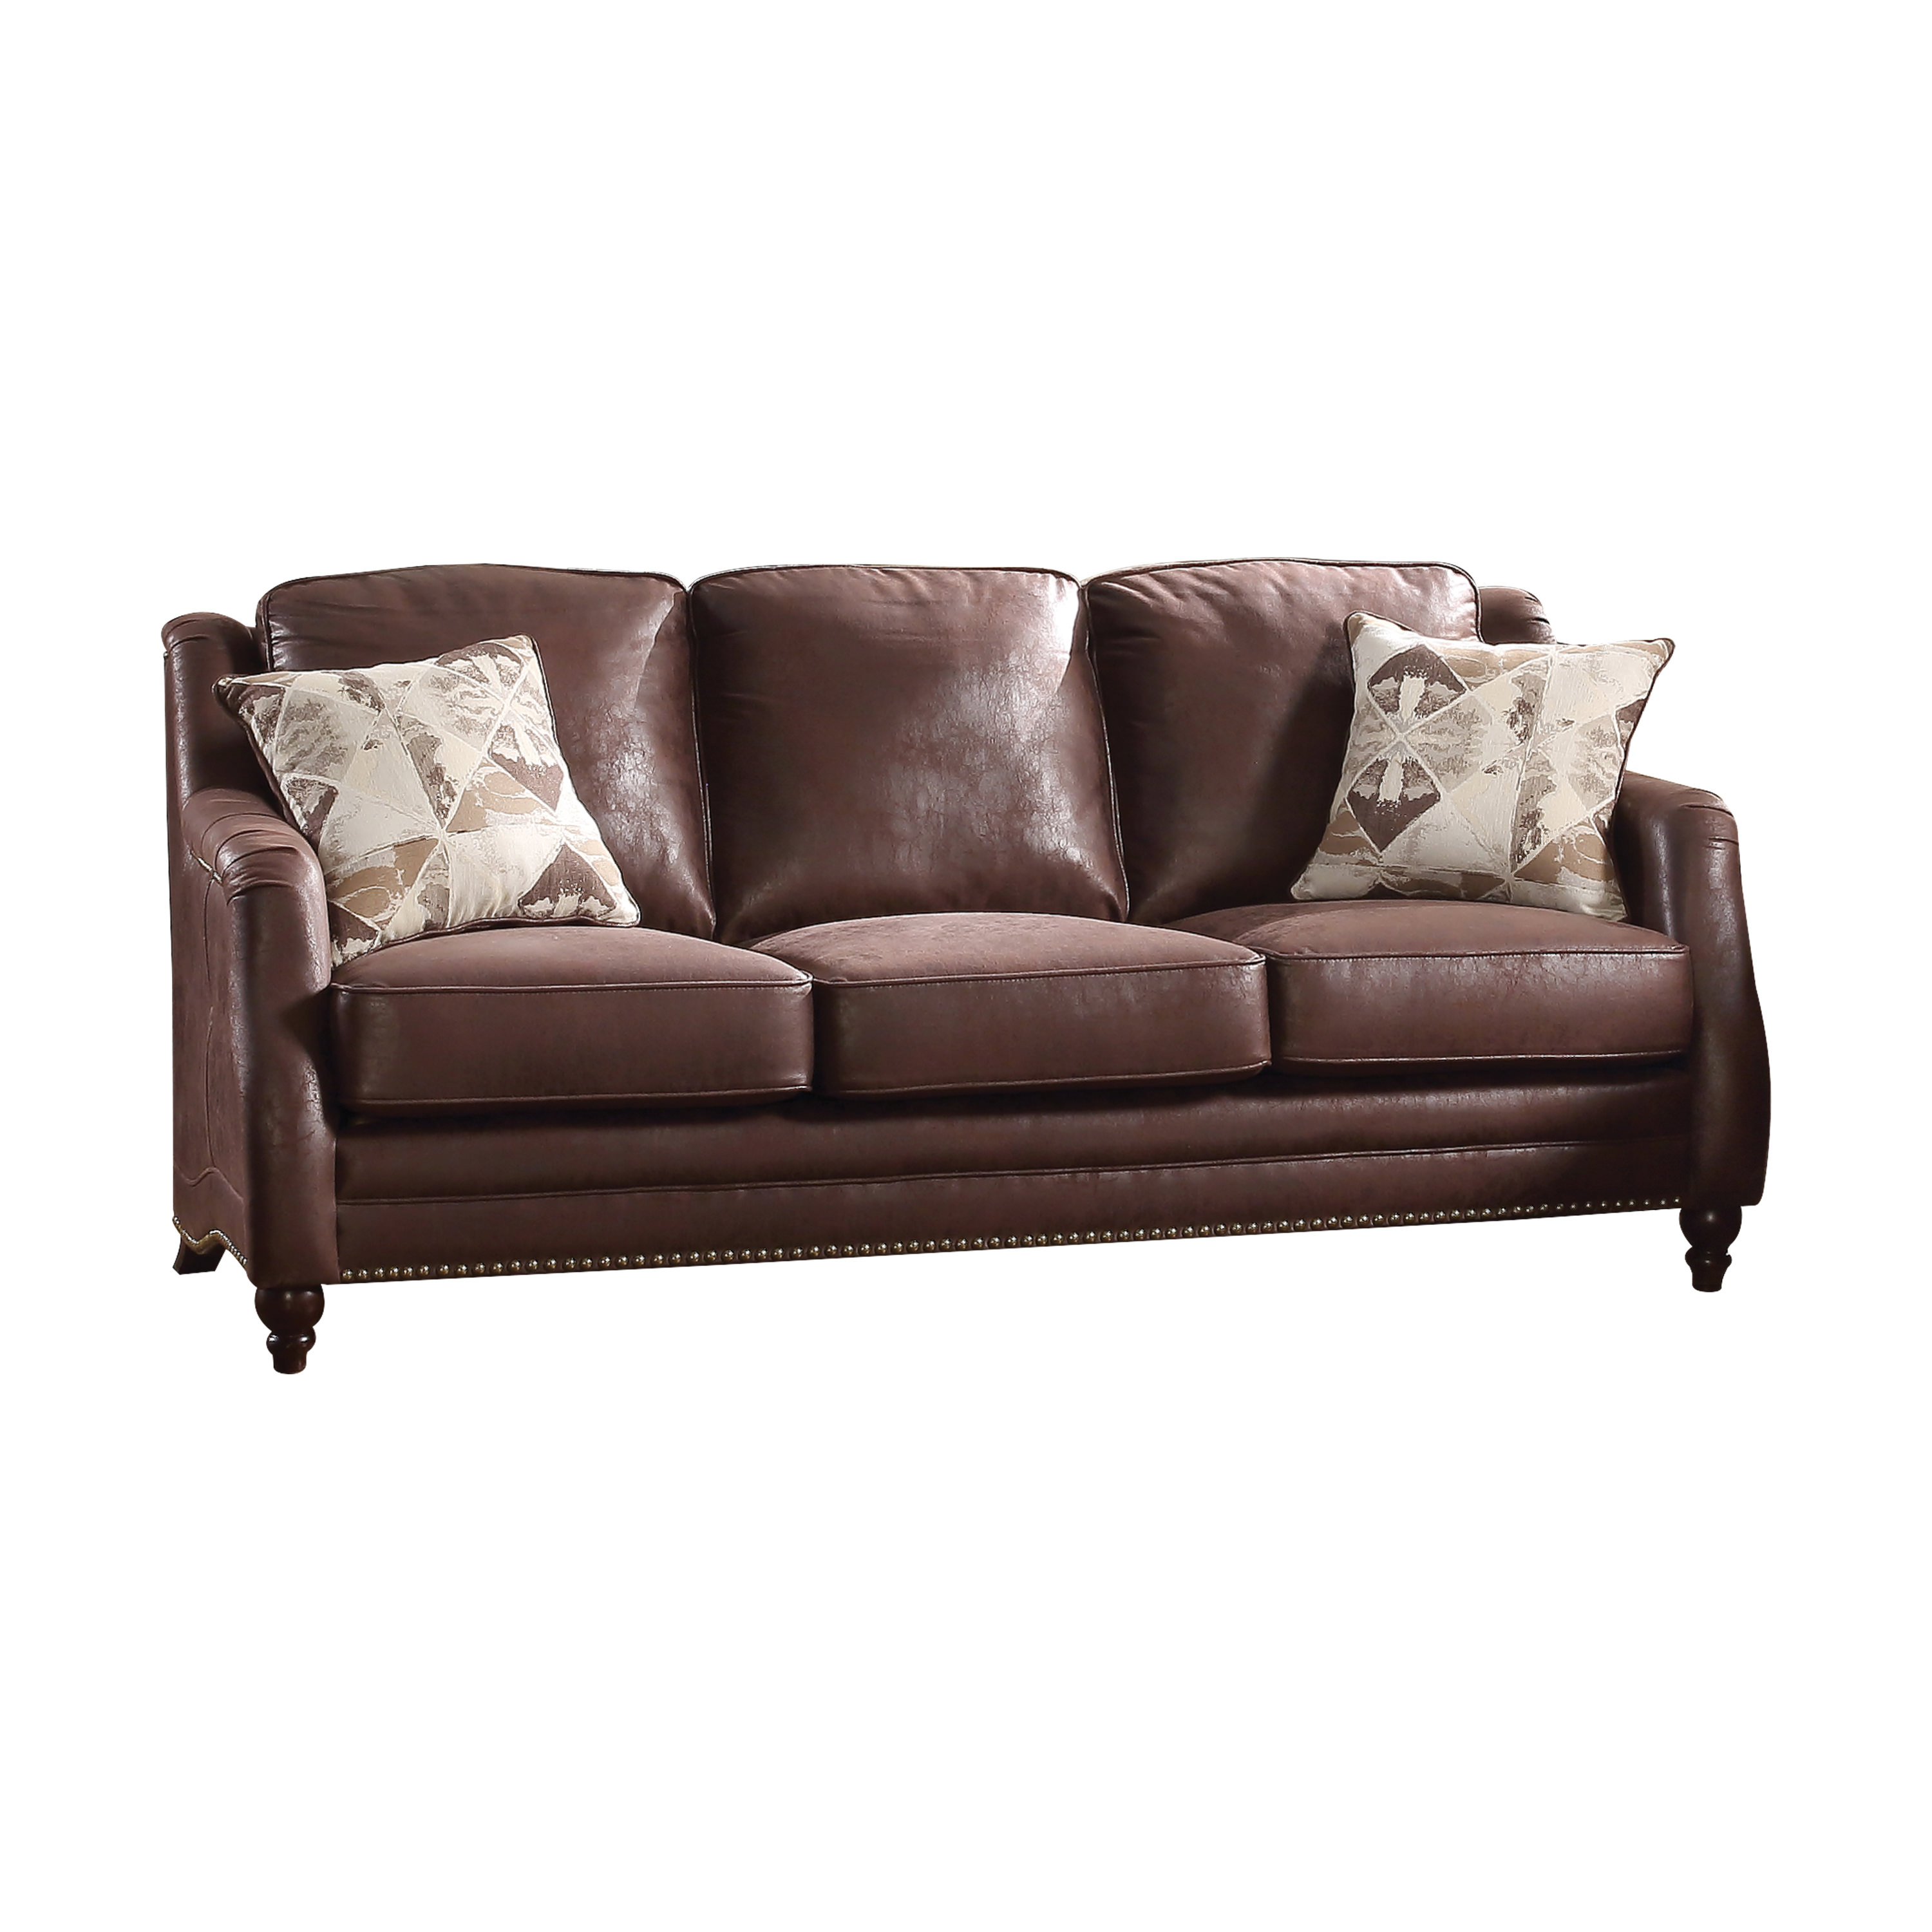 Acme Nickolas Stationary Sofa with 2 Pillows in Chocolate Fabric